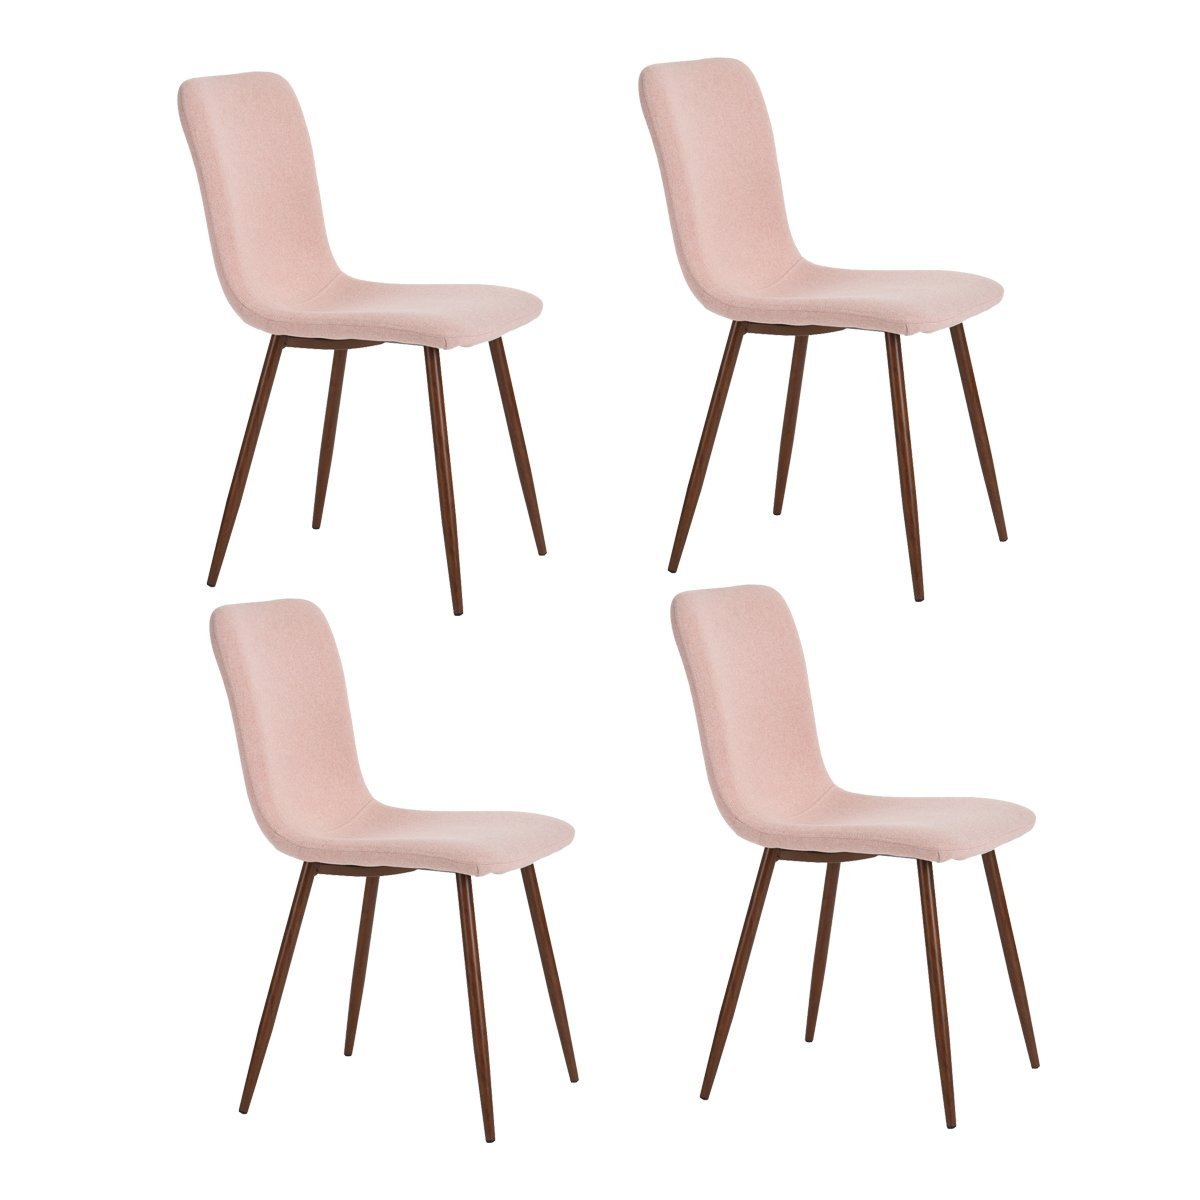 HOMYCASA Set of 4 Dining Chairs Retro Style Fabric Seat & Back with Metal Legs PVC Coating Kitchen Dining Room Chairs (Pink)